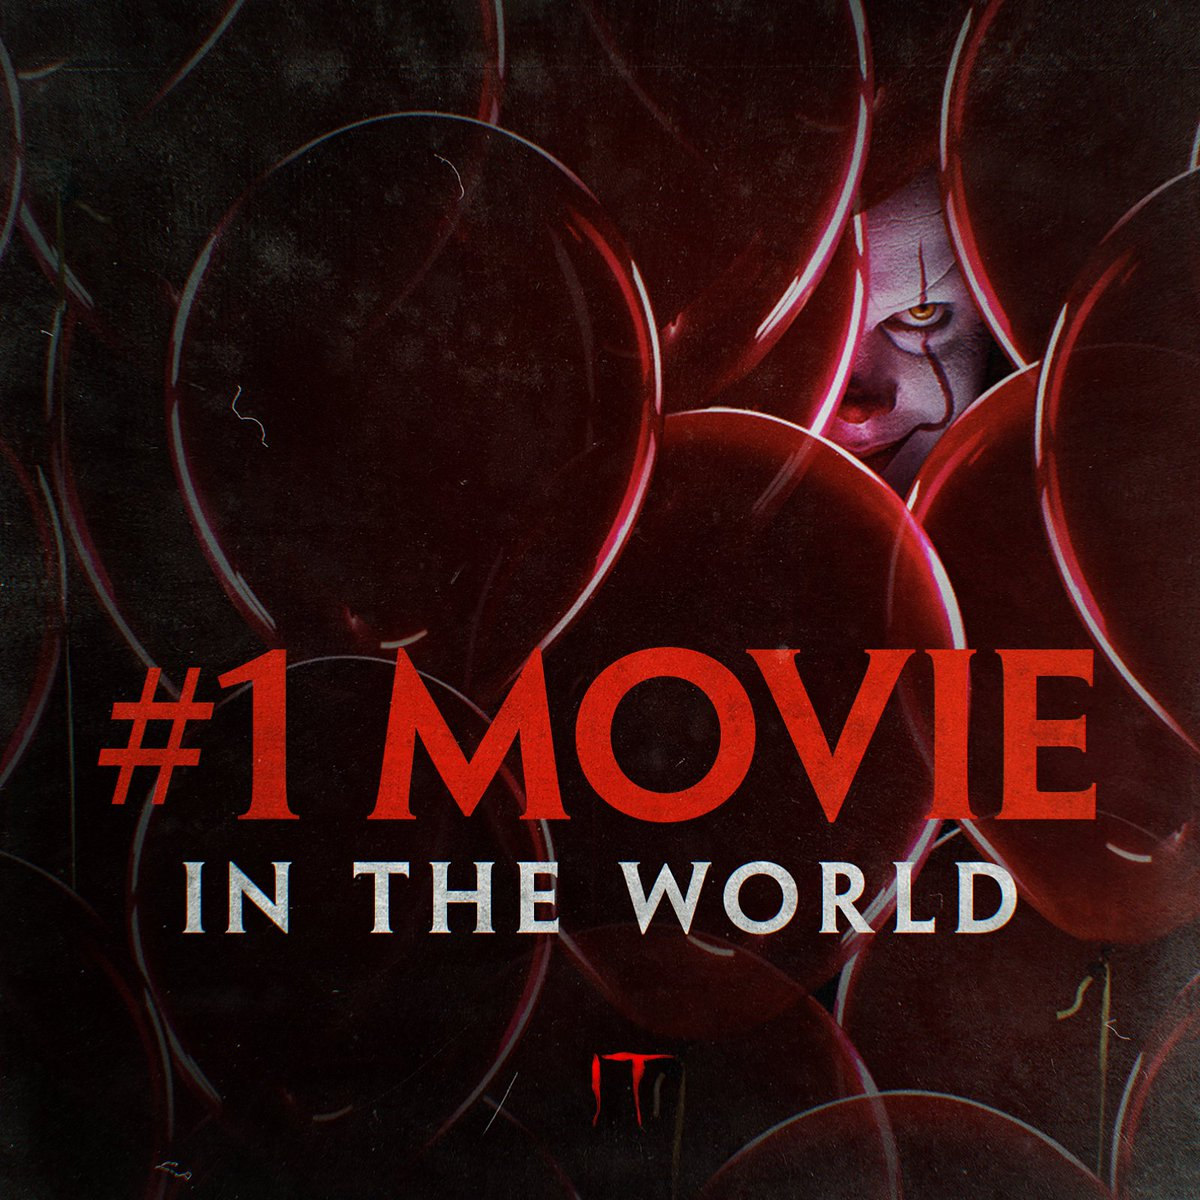 """test Twitter Media - RT @ITMovieOfficial """"Hiya, World. IT's here to stay.  Get your tickets: https://t.co/7dBUJ3Qvr4 #ITMovie"""" https://t.co/iQPbXLlrpS"""